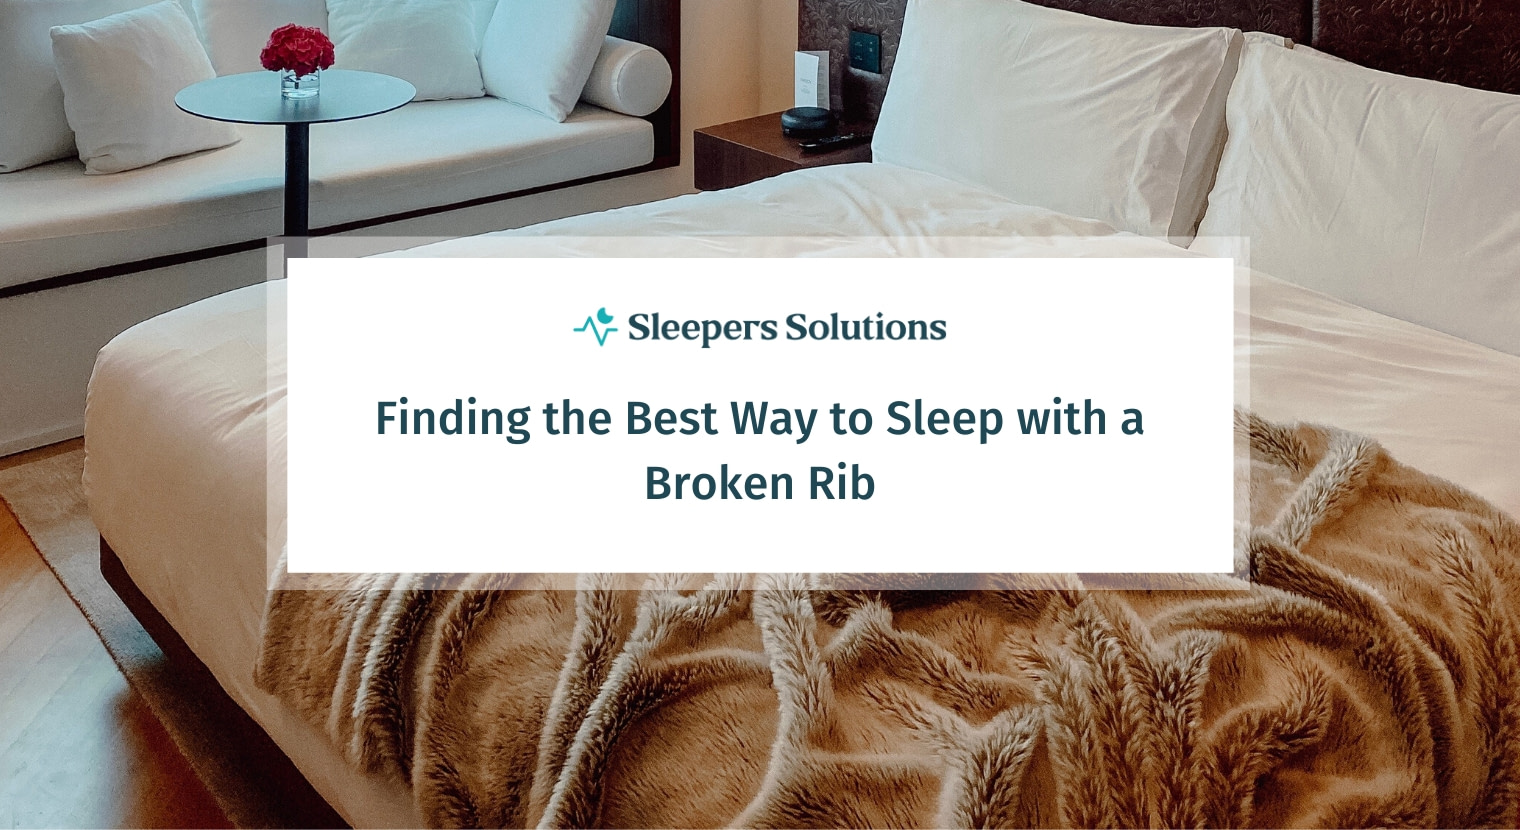 Finding the Best Way to Sleep With a Broken Rib